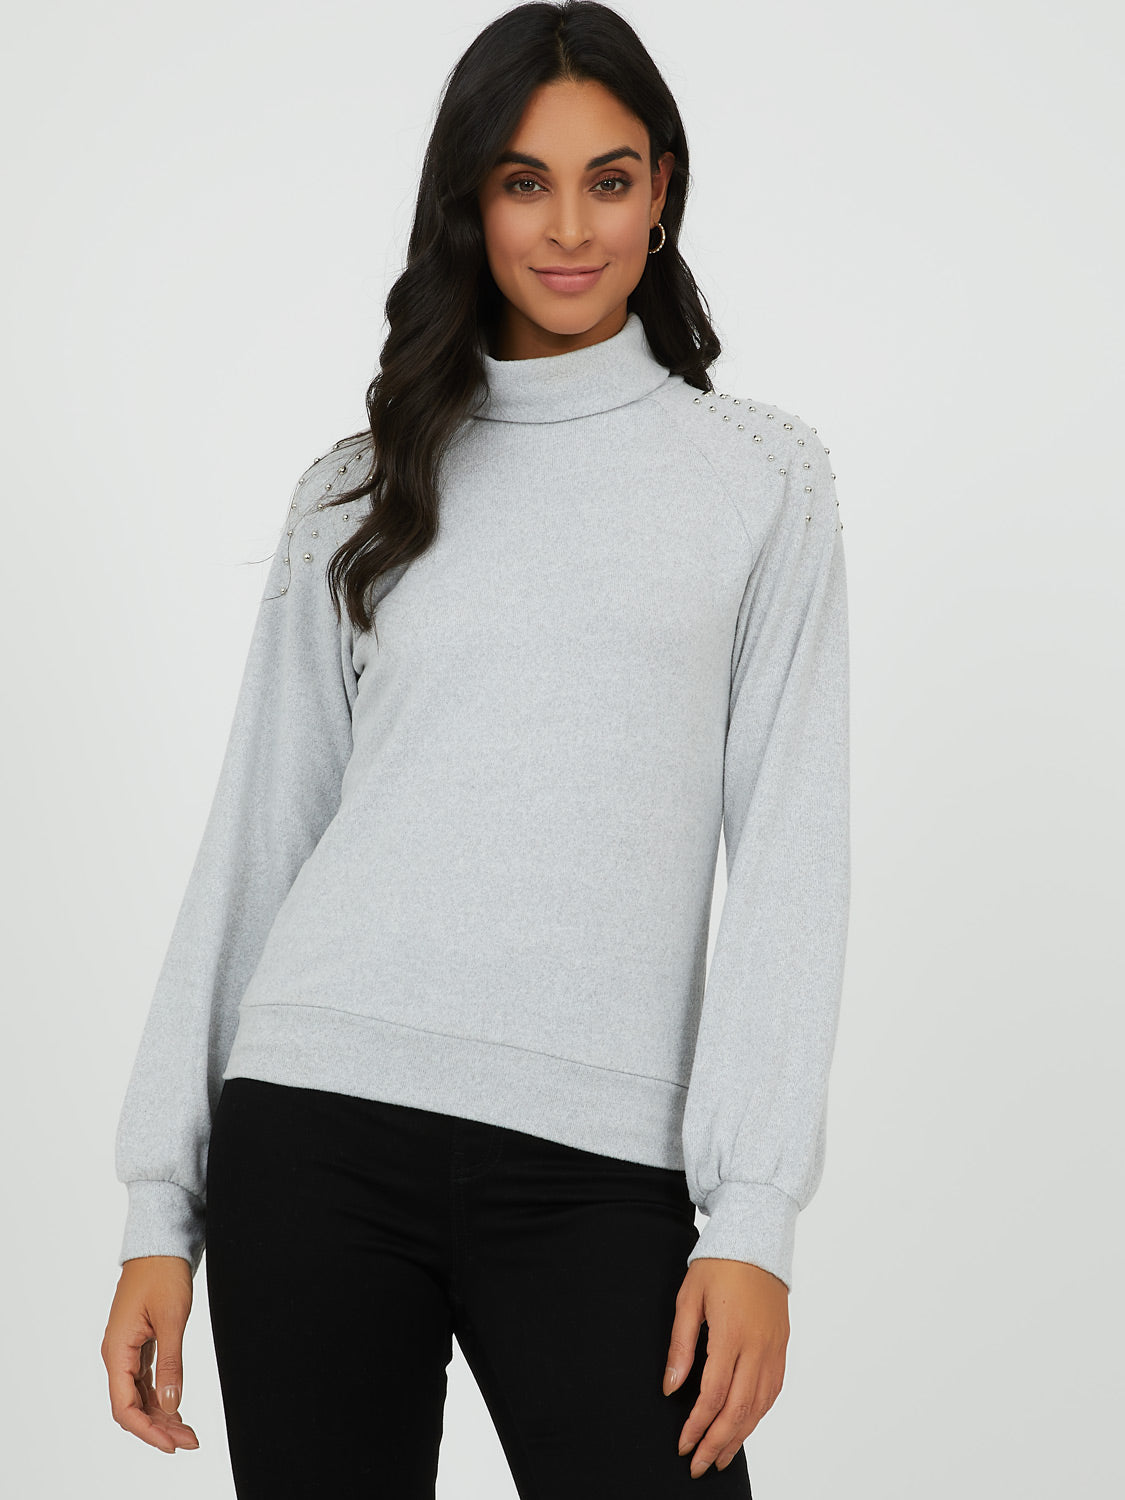 Studded Shoulder Knit Turtleneck Top